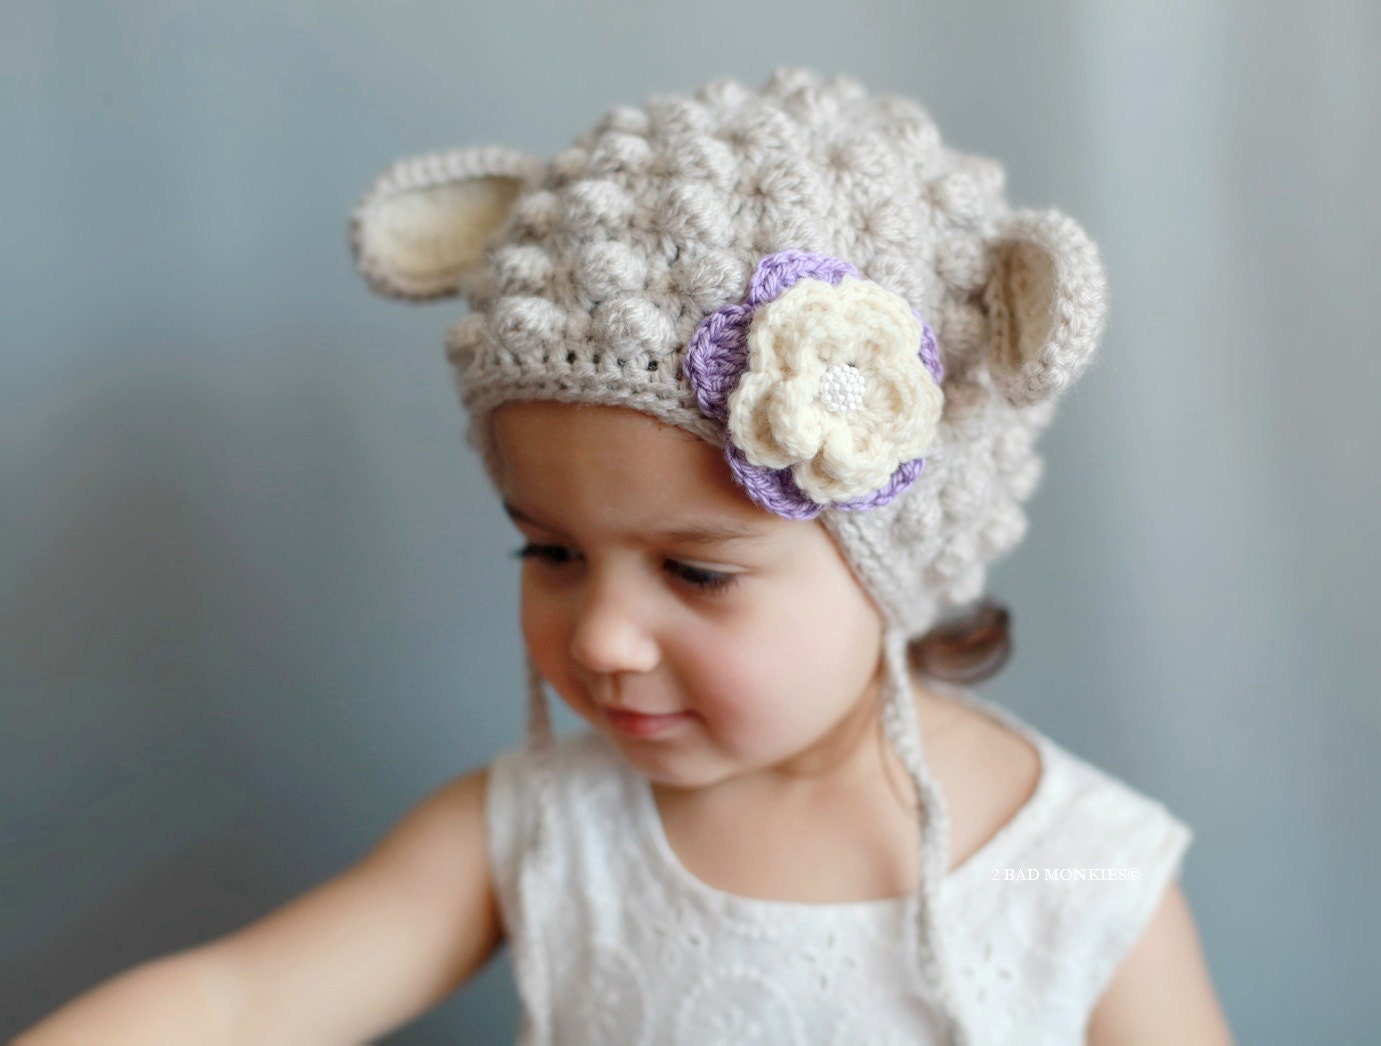 Crochet Pattern For Baby Lamb Hat : Lamb hat baby Lamb hat newborn Lamb hat sheep hat by ...